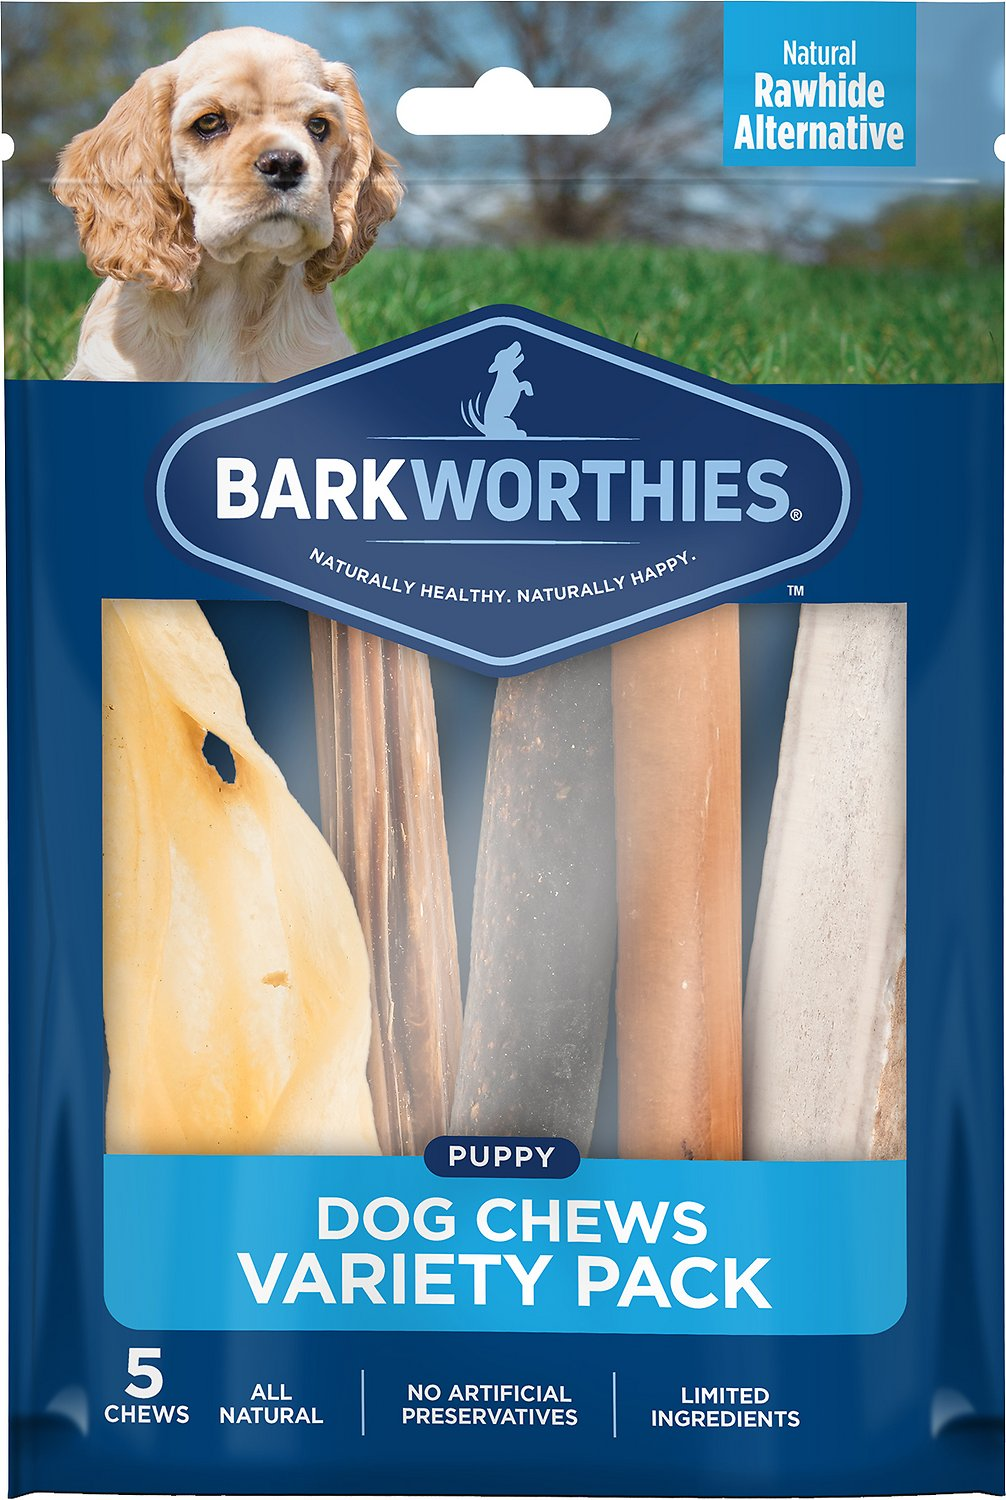 Barkworthies Puppy Variety Pack Natural Dog Treats, 5 count